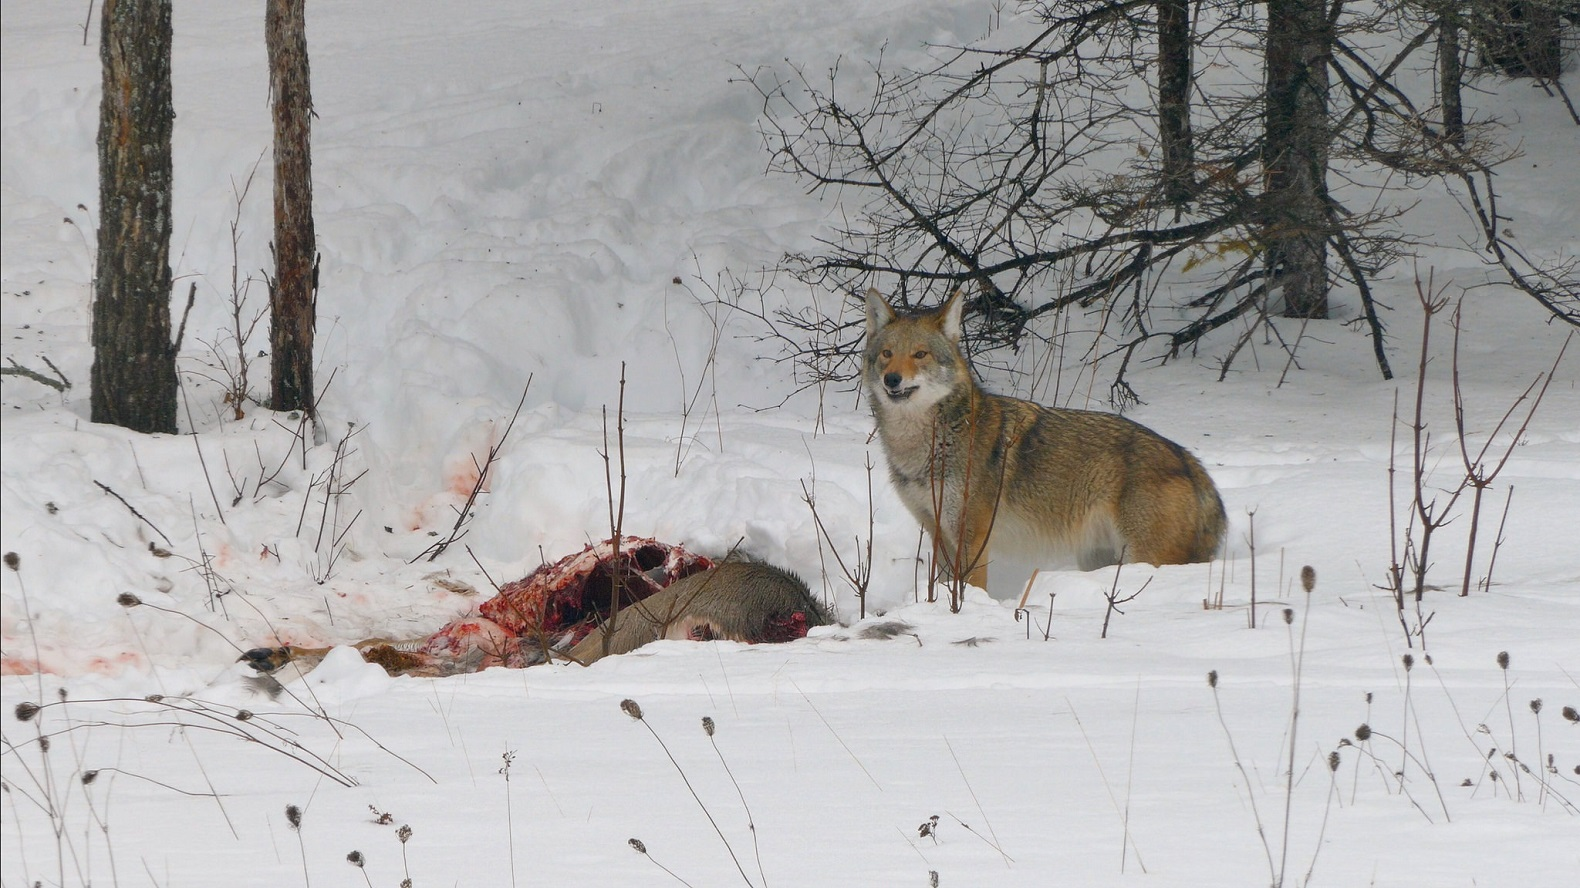 American Coywolf is a fascinating hybrid species with supercharged adaptation